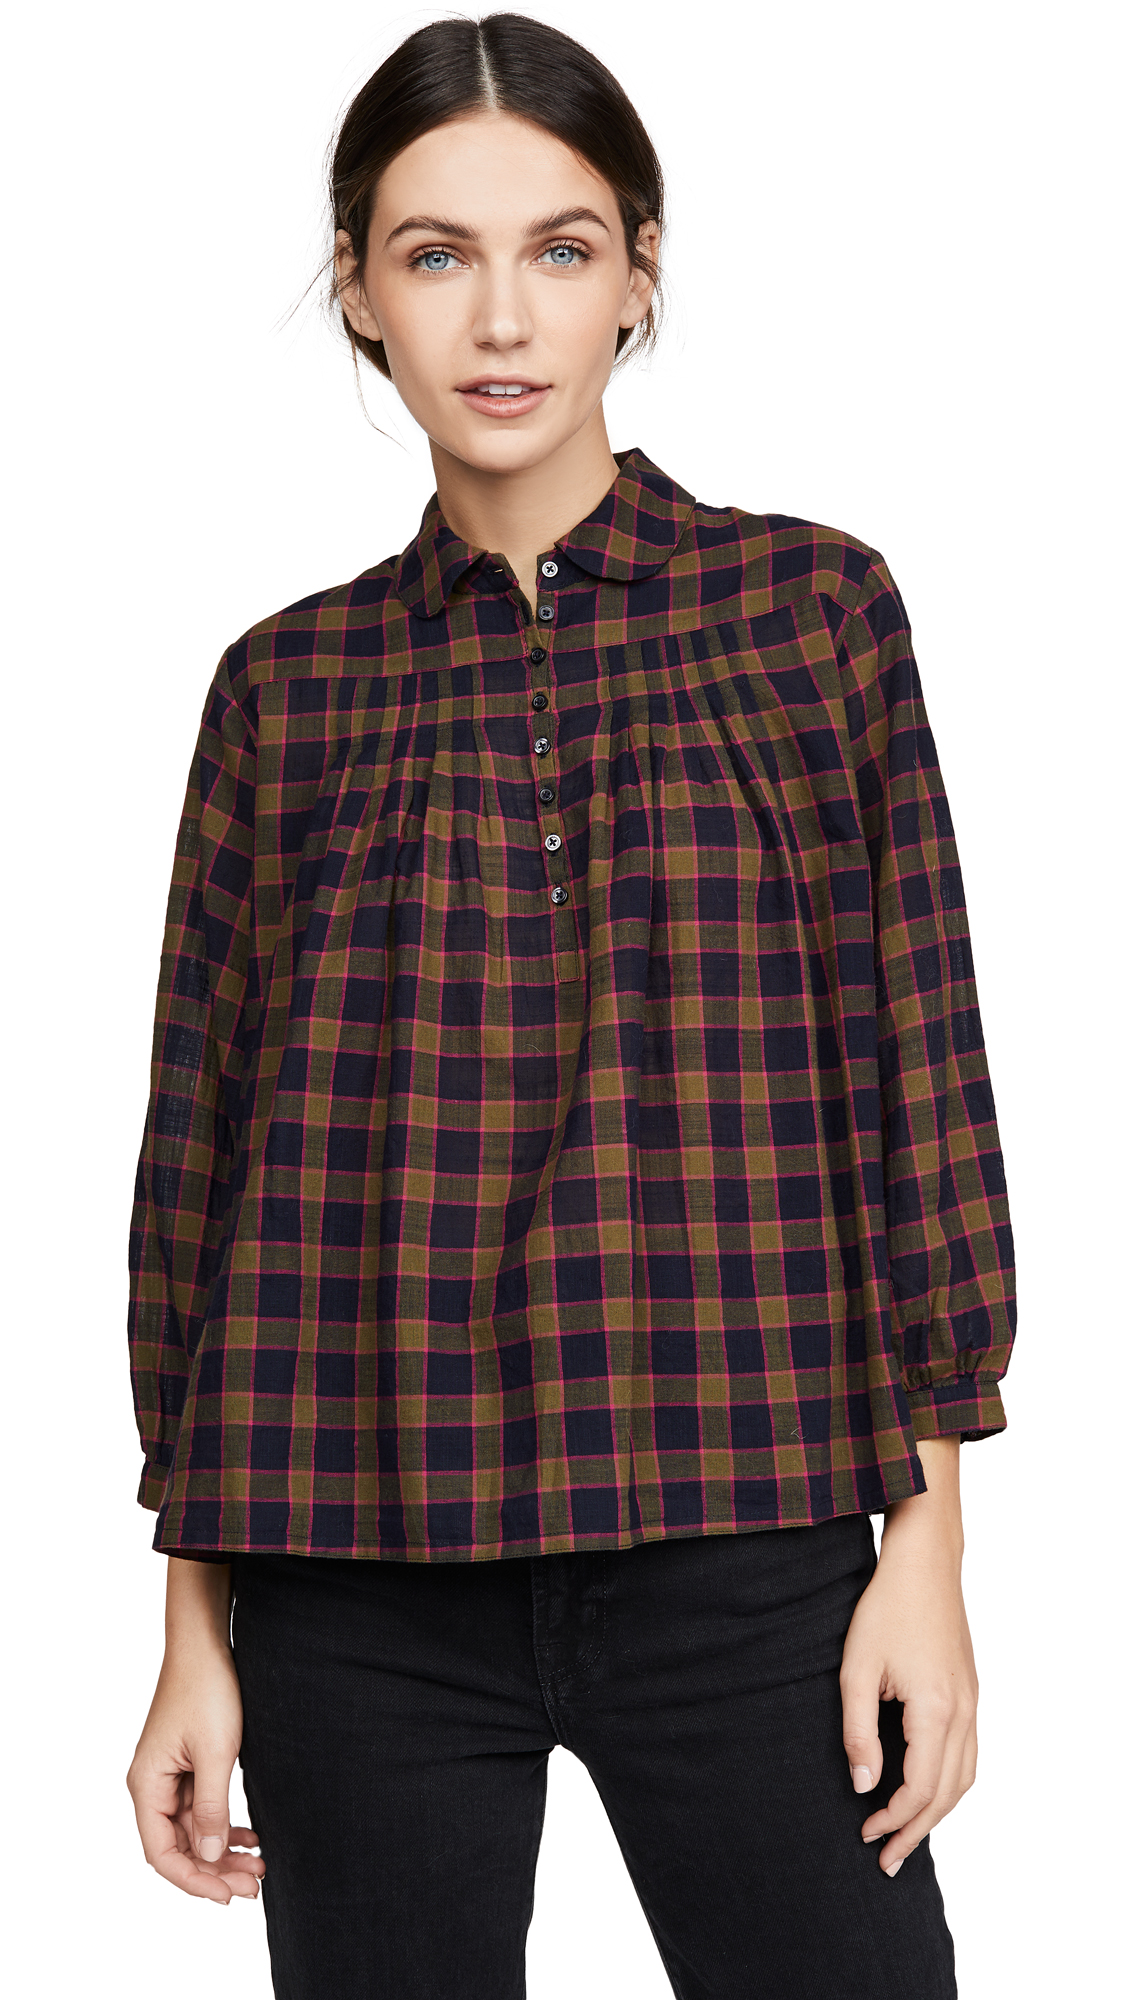 THE GREAT. The Lowland Top - 40% Off Sale